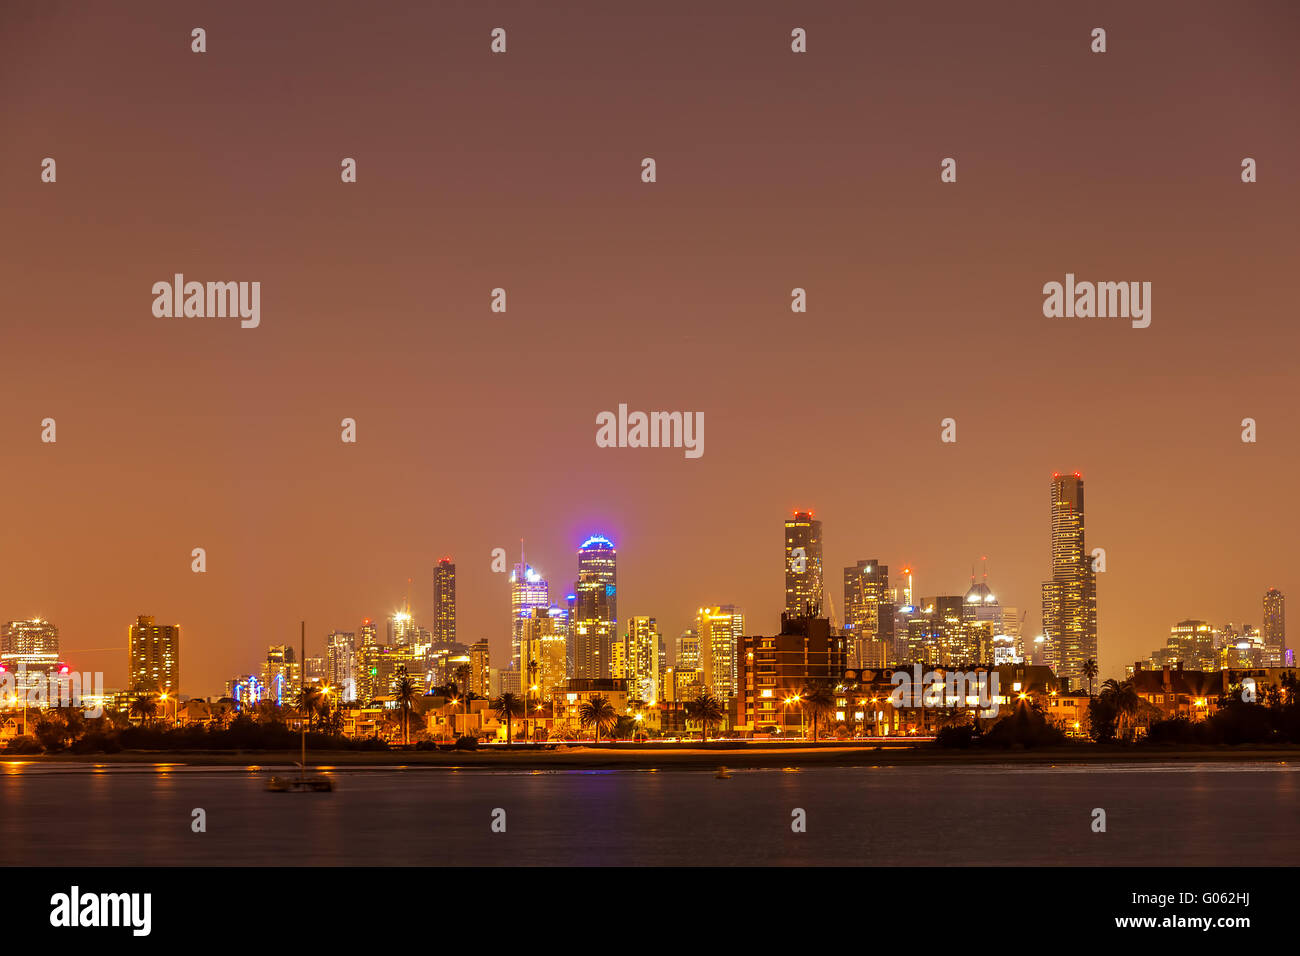 Nightscape of Melbourne CBD skyline - Stock Image